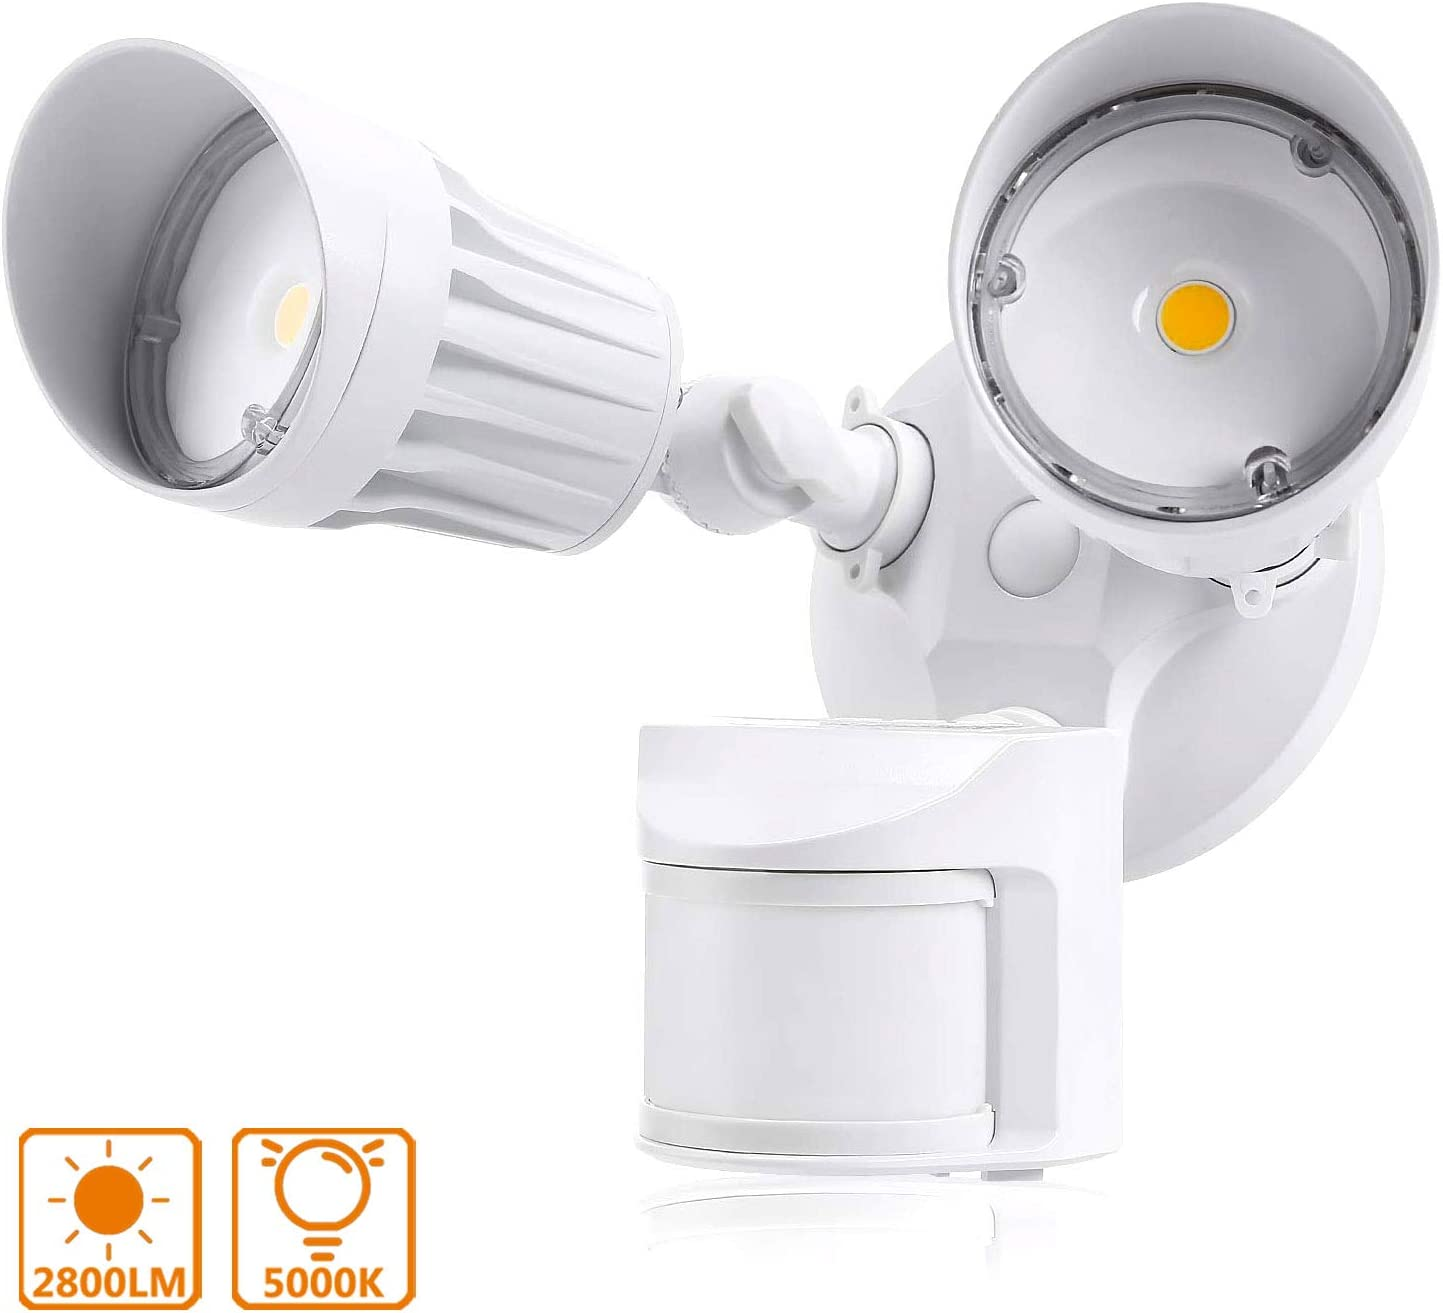 External Outdoor Garden Motion Sensor Weatherproof Wall Spot Light Lamp Mount